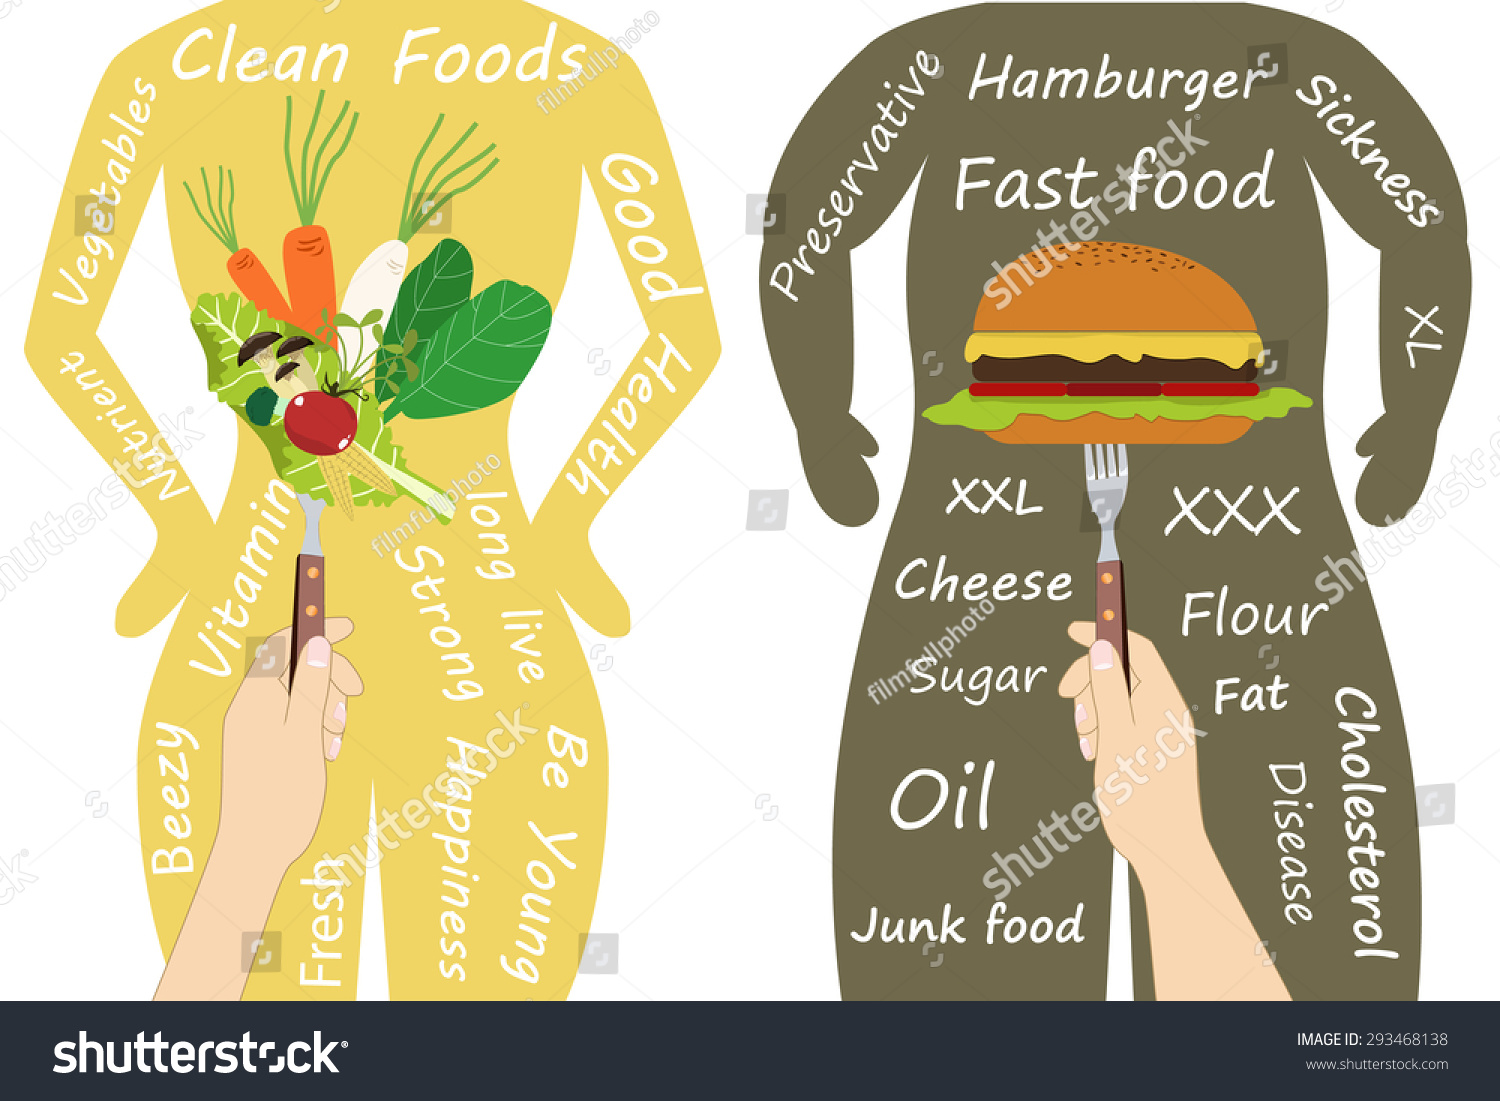 essay healthy food vs junk food Junk food is defined as an empty calorie food, which is high in calorie and low in essential nutrients that our body needs to stay healthy common junk foods include.